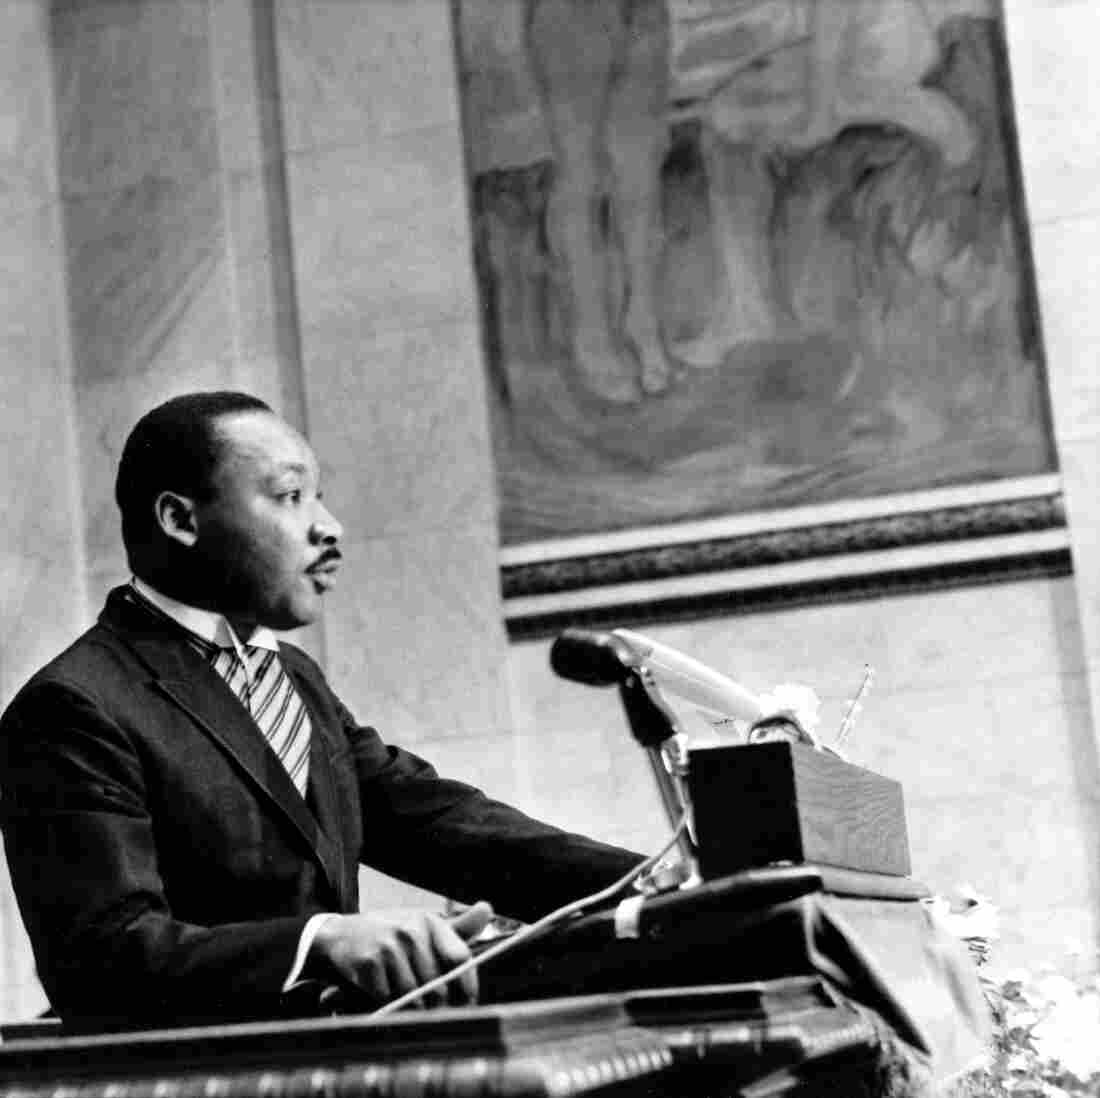 Martin Luther King Jr. delivers his Nobel Peace Prize acceptance speech in Norway in 1964. In King's hometown of Atlanta, social conservatives at first refused to attend an integrated dinner in his honor.